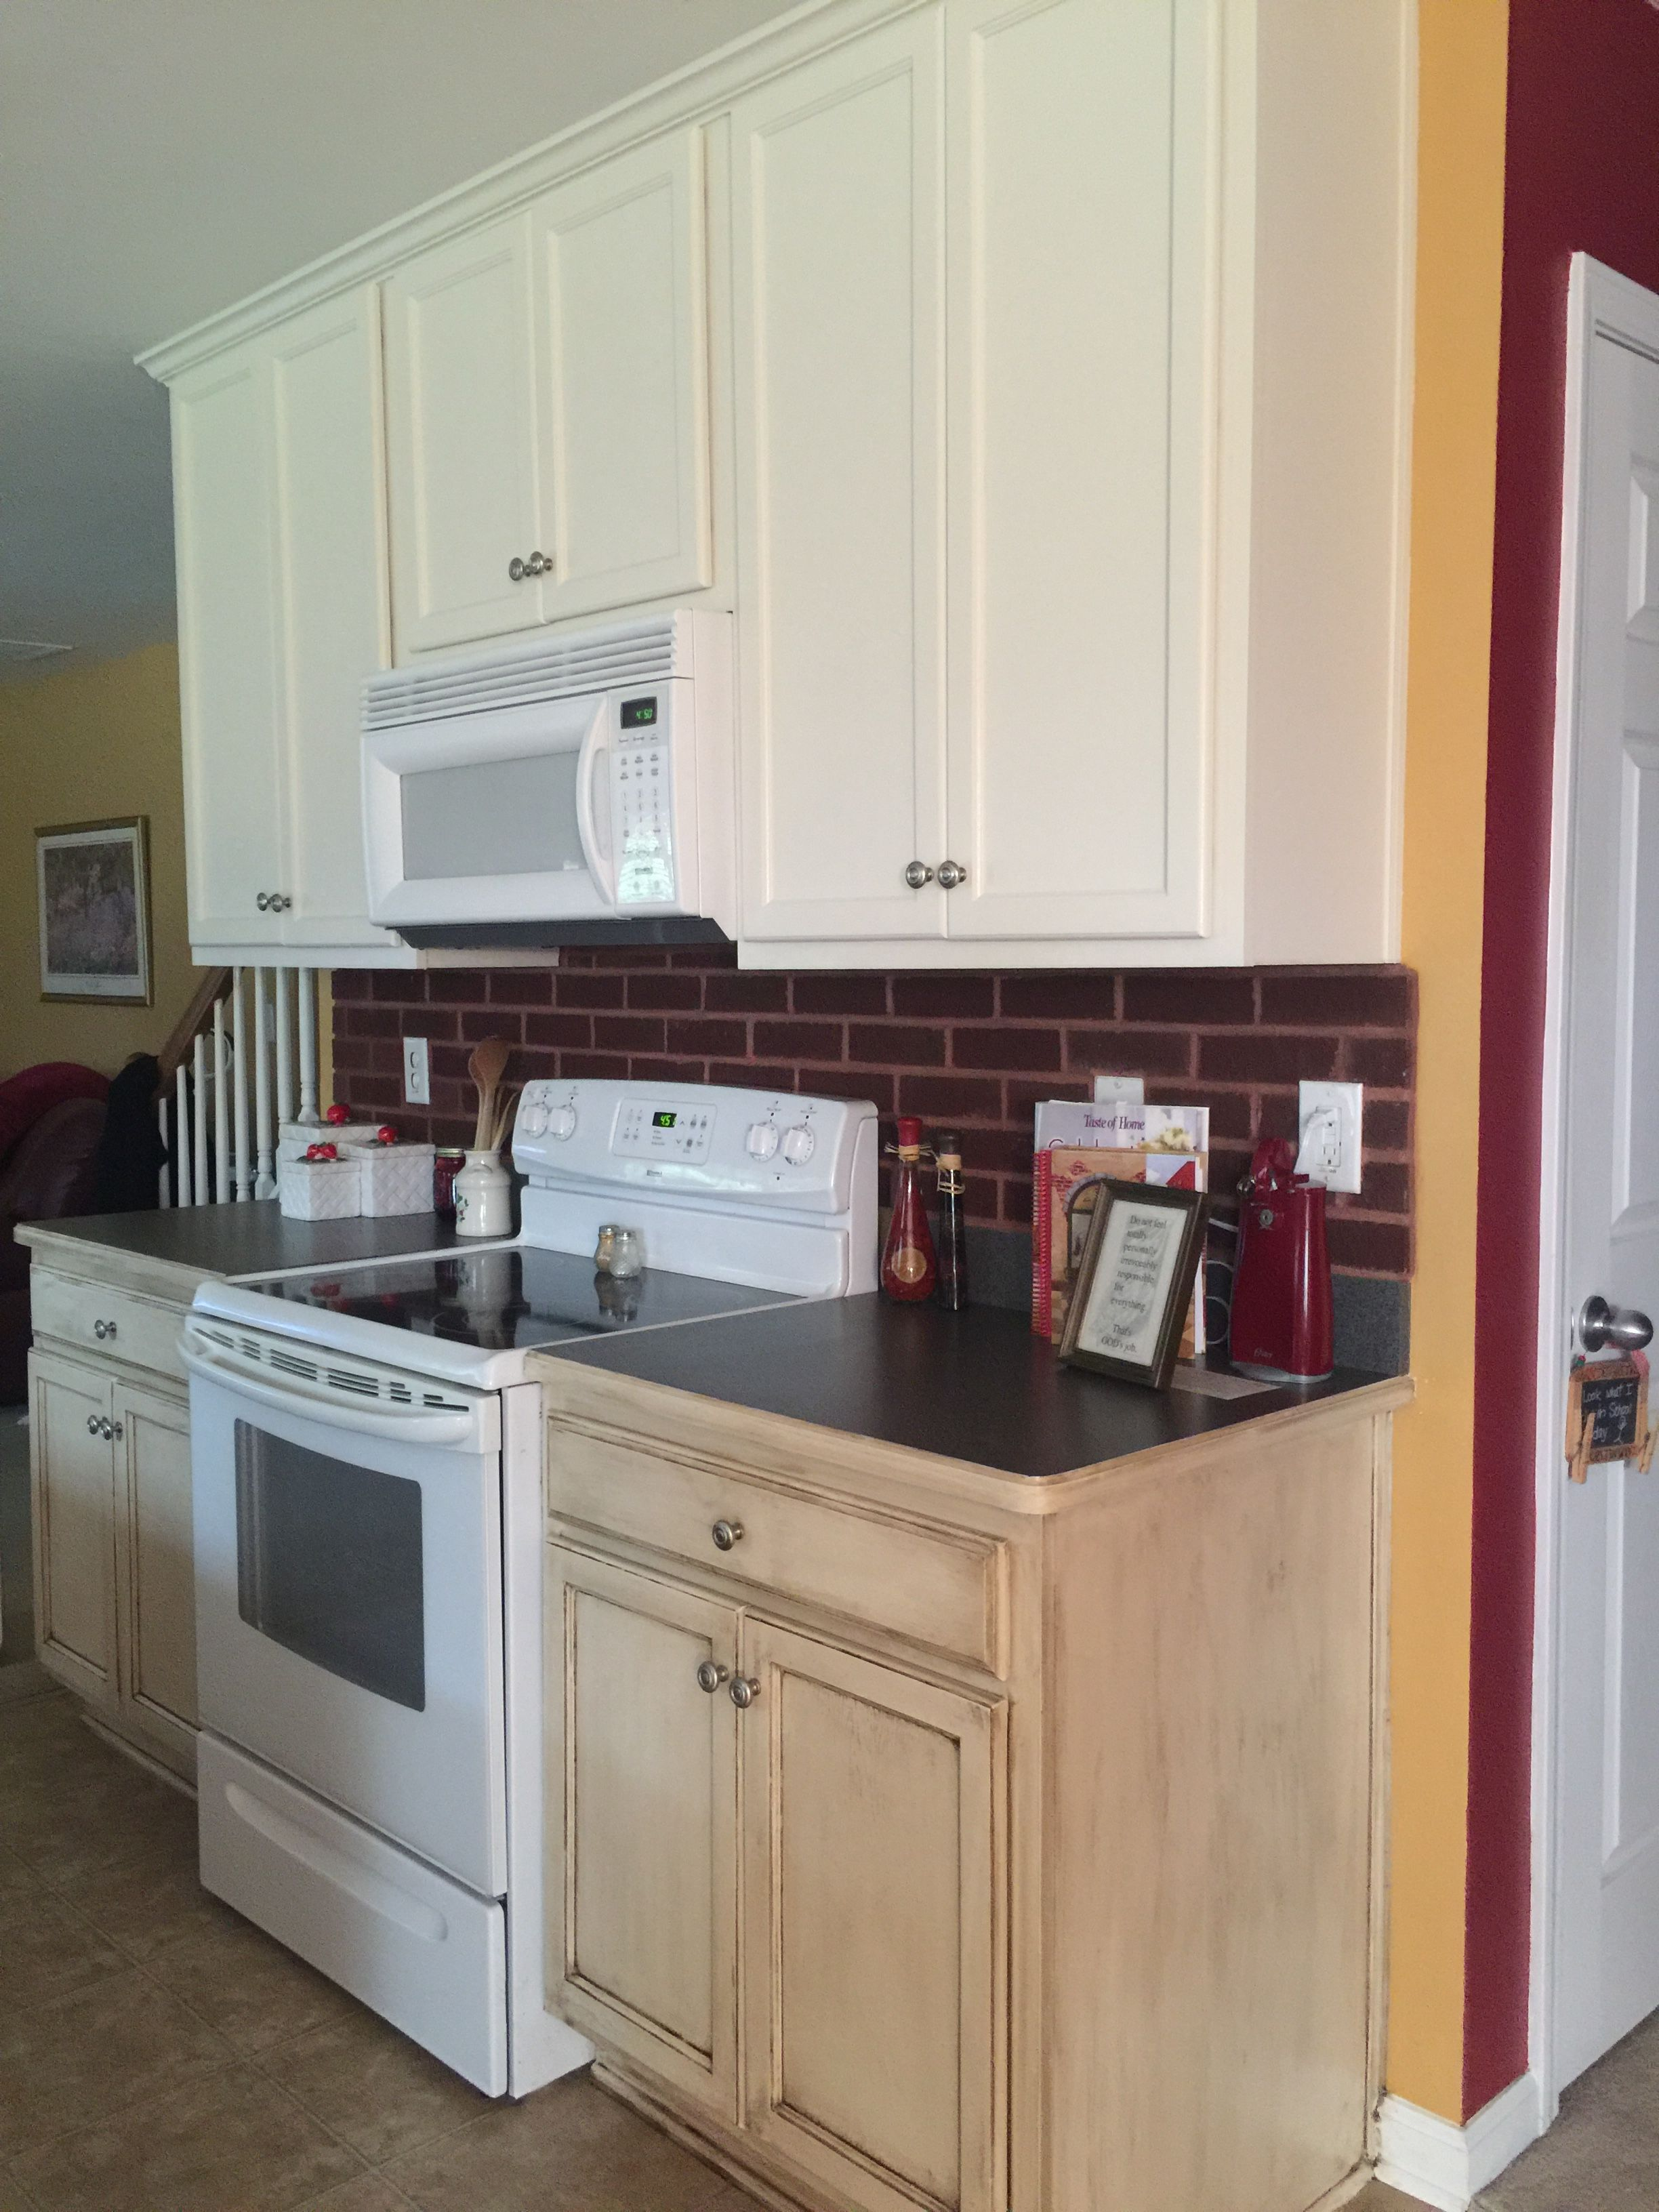 Two Tone Kitchen Upper Cabinets Painted With Behr Antique White Lower Cabinets Distress Painting Kitchen Cabinets Laminate Kitchen Cabinets Kitchen Cabinets